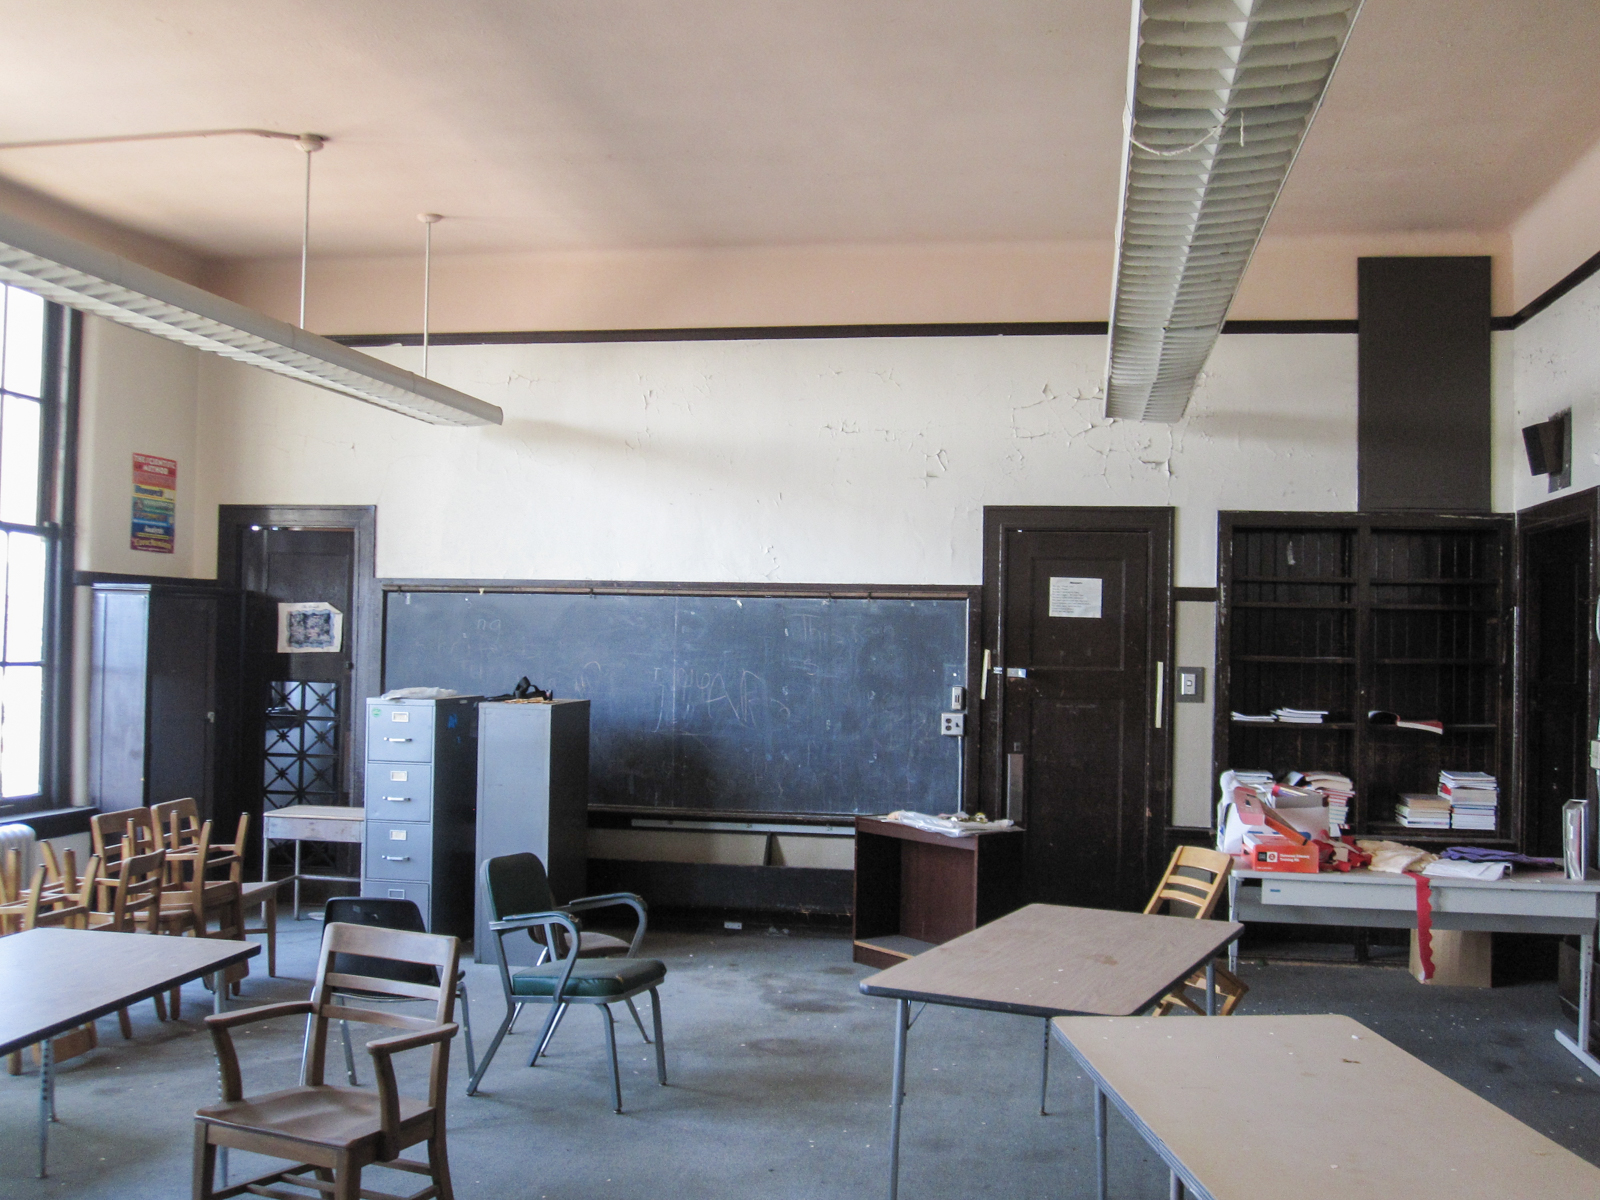 Sands Senior Historic Classroom 1